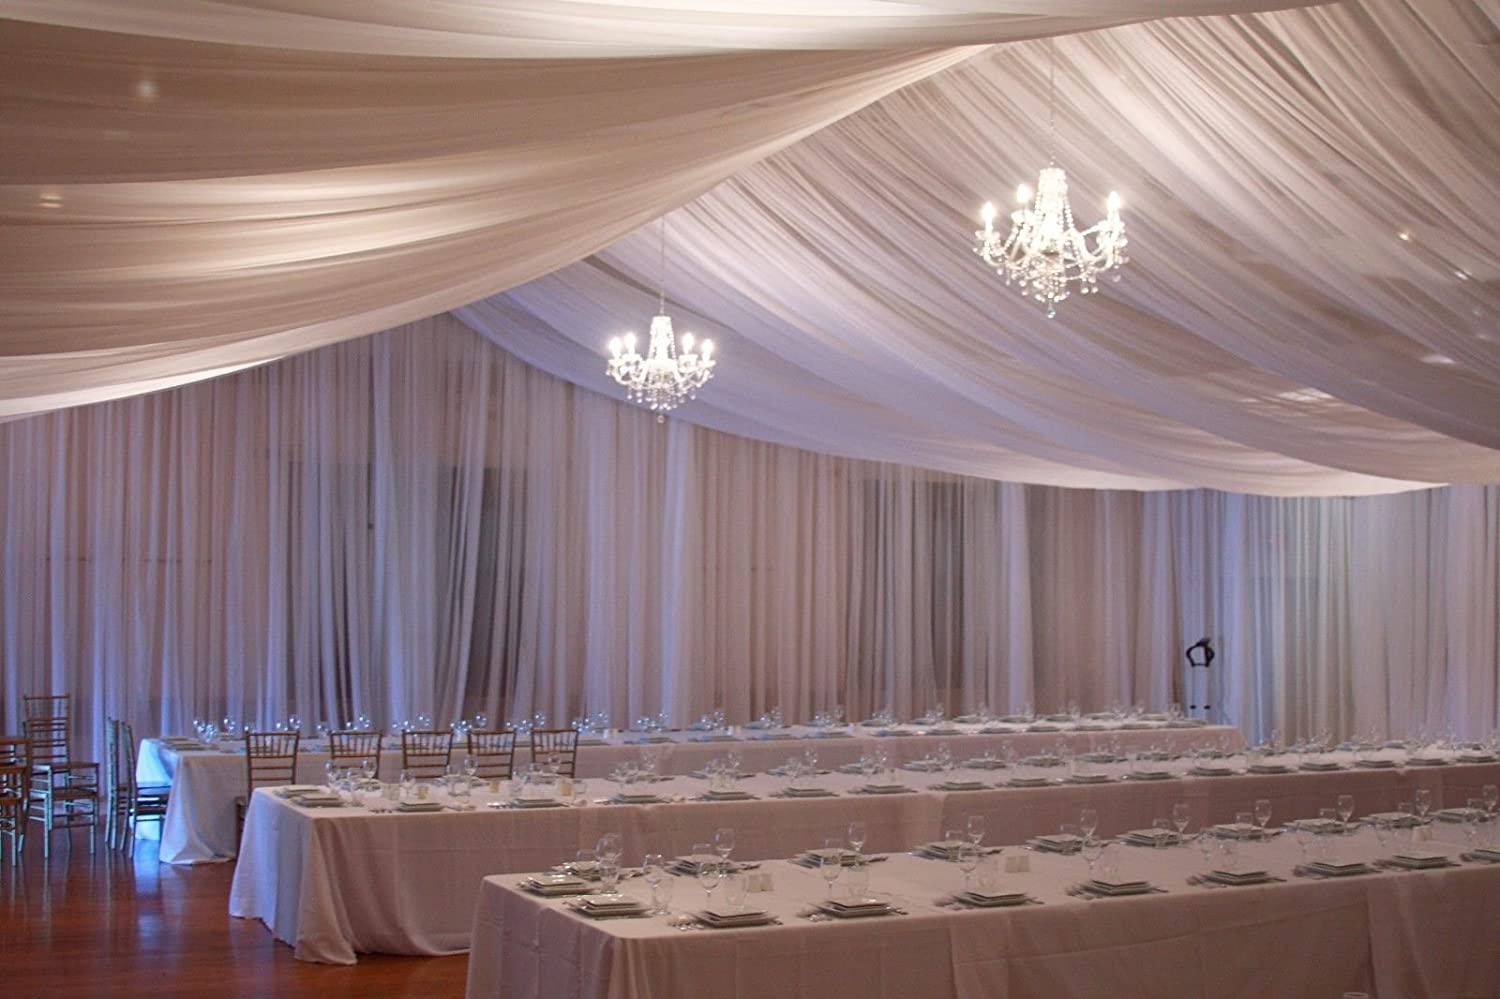 Ceiling Draping Ivory Sheer Ceiling Curtain Voile Chiffon Ceiling Drape 10 Ft Wx 30 Ft H Panel Wedding